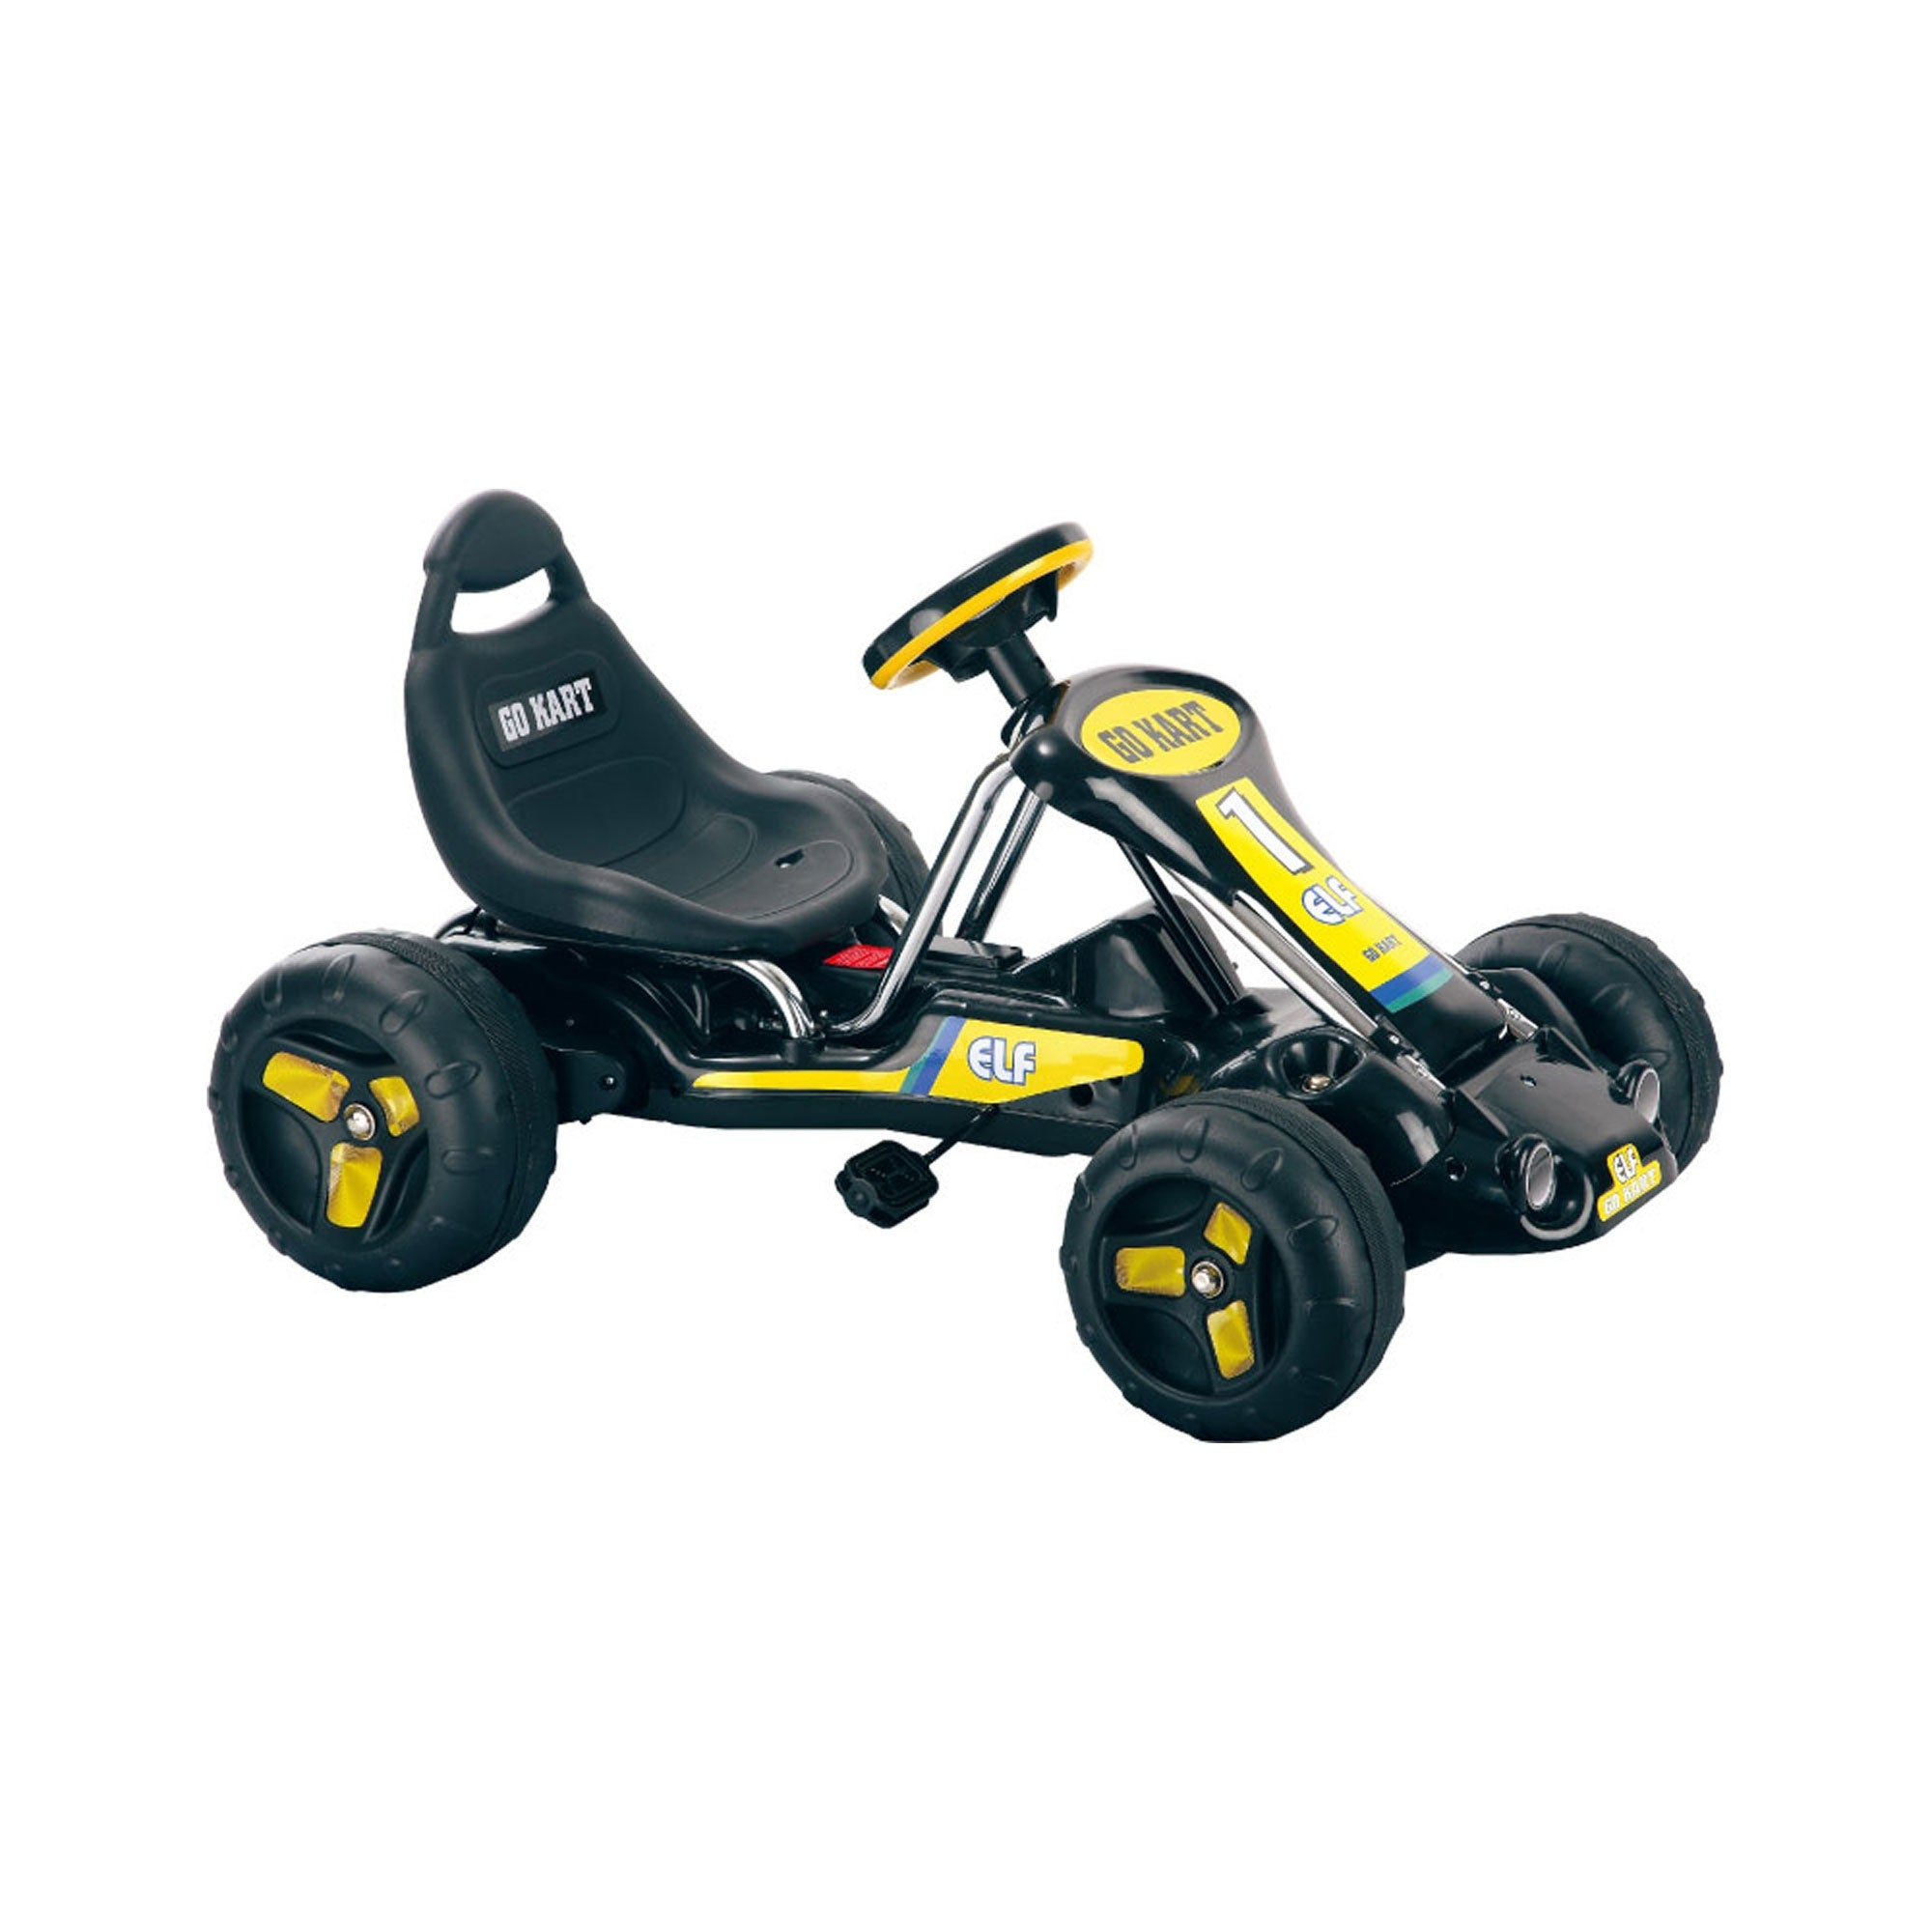 Ride On Toy Go Kart, Pedal Powered Ride On Toy Ride On Toys for Boys and Girls, For 3 - 5 Year Olds